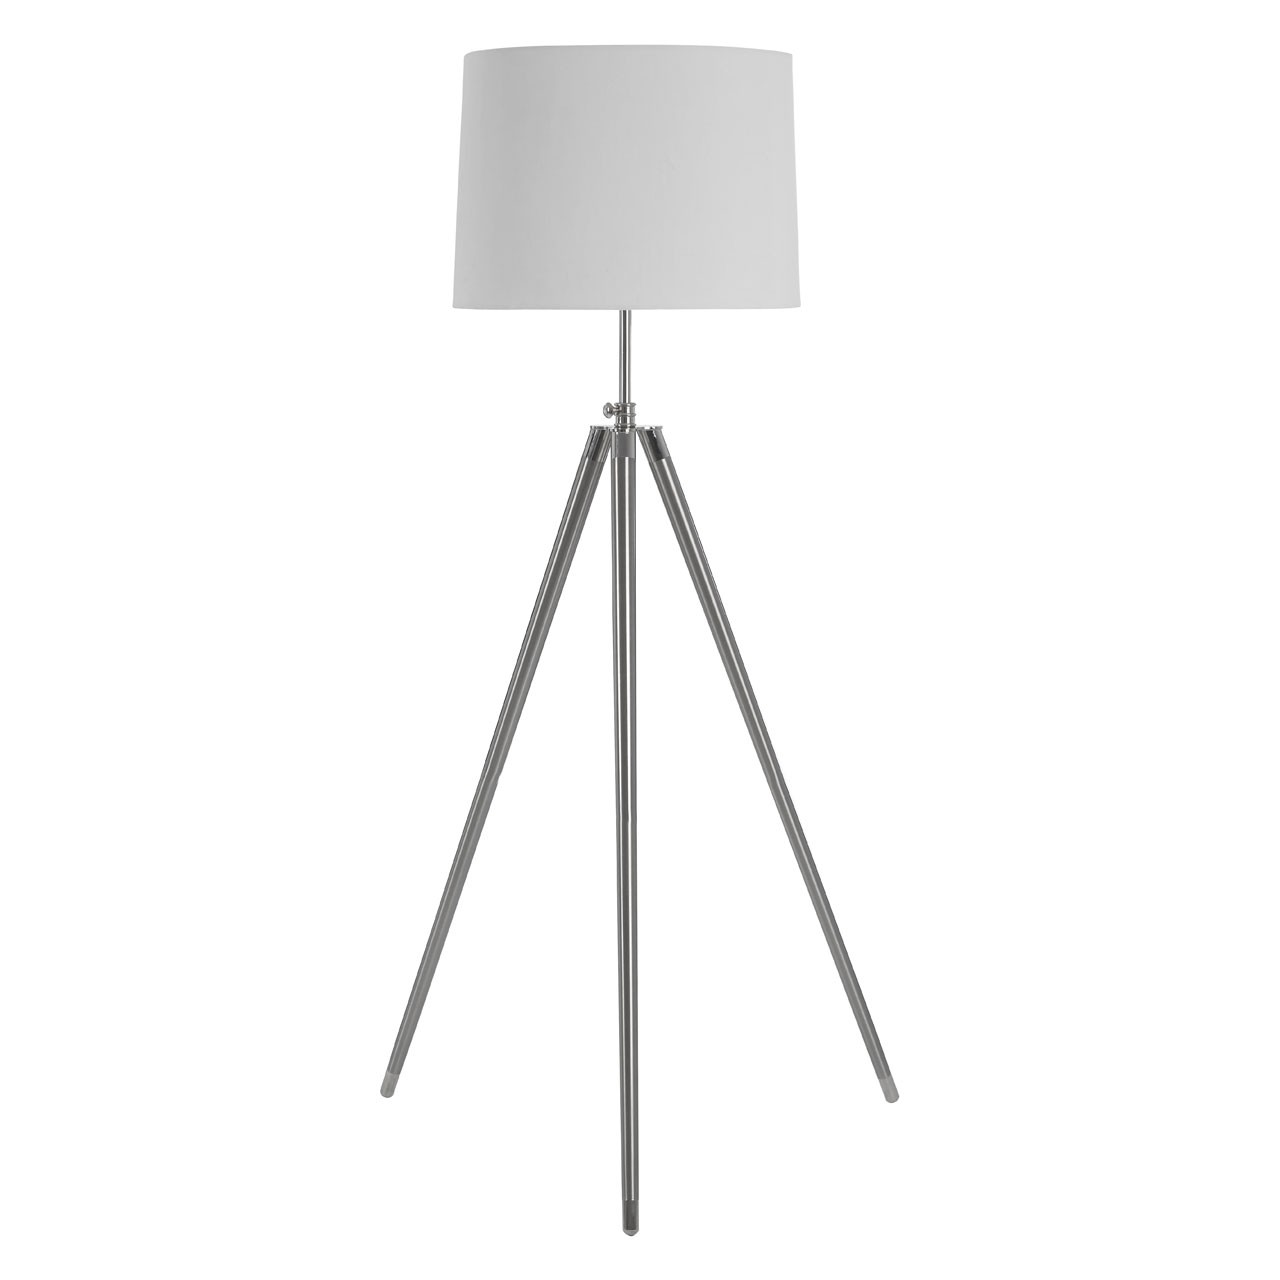 Unique Floor Lamp Incorporates Steel And Natural Fabric